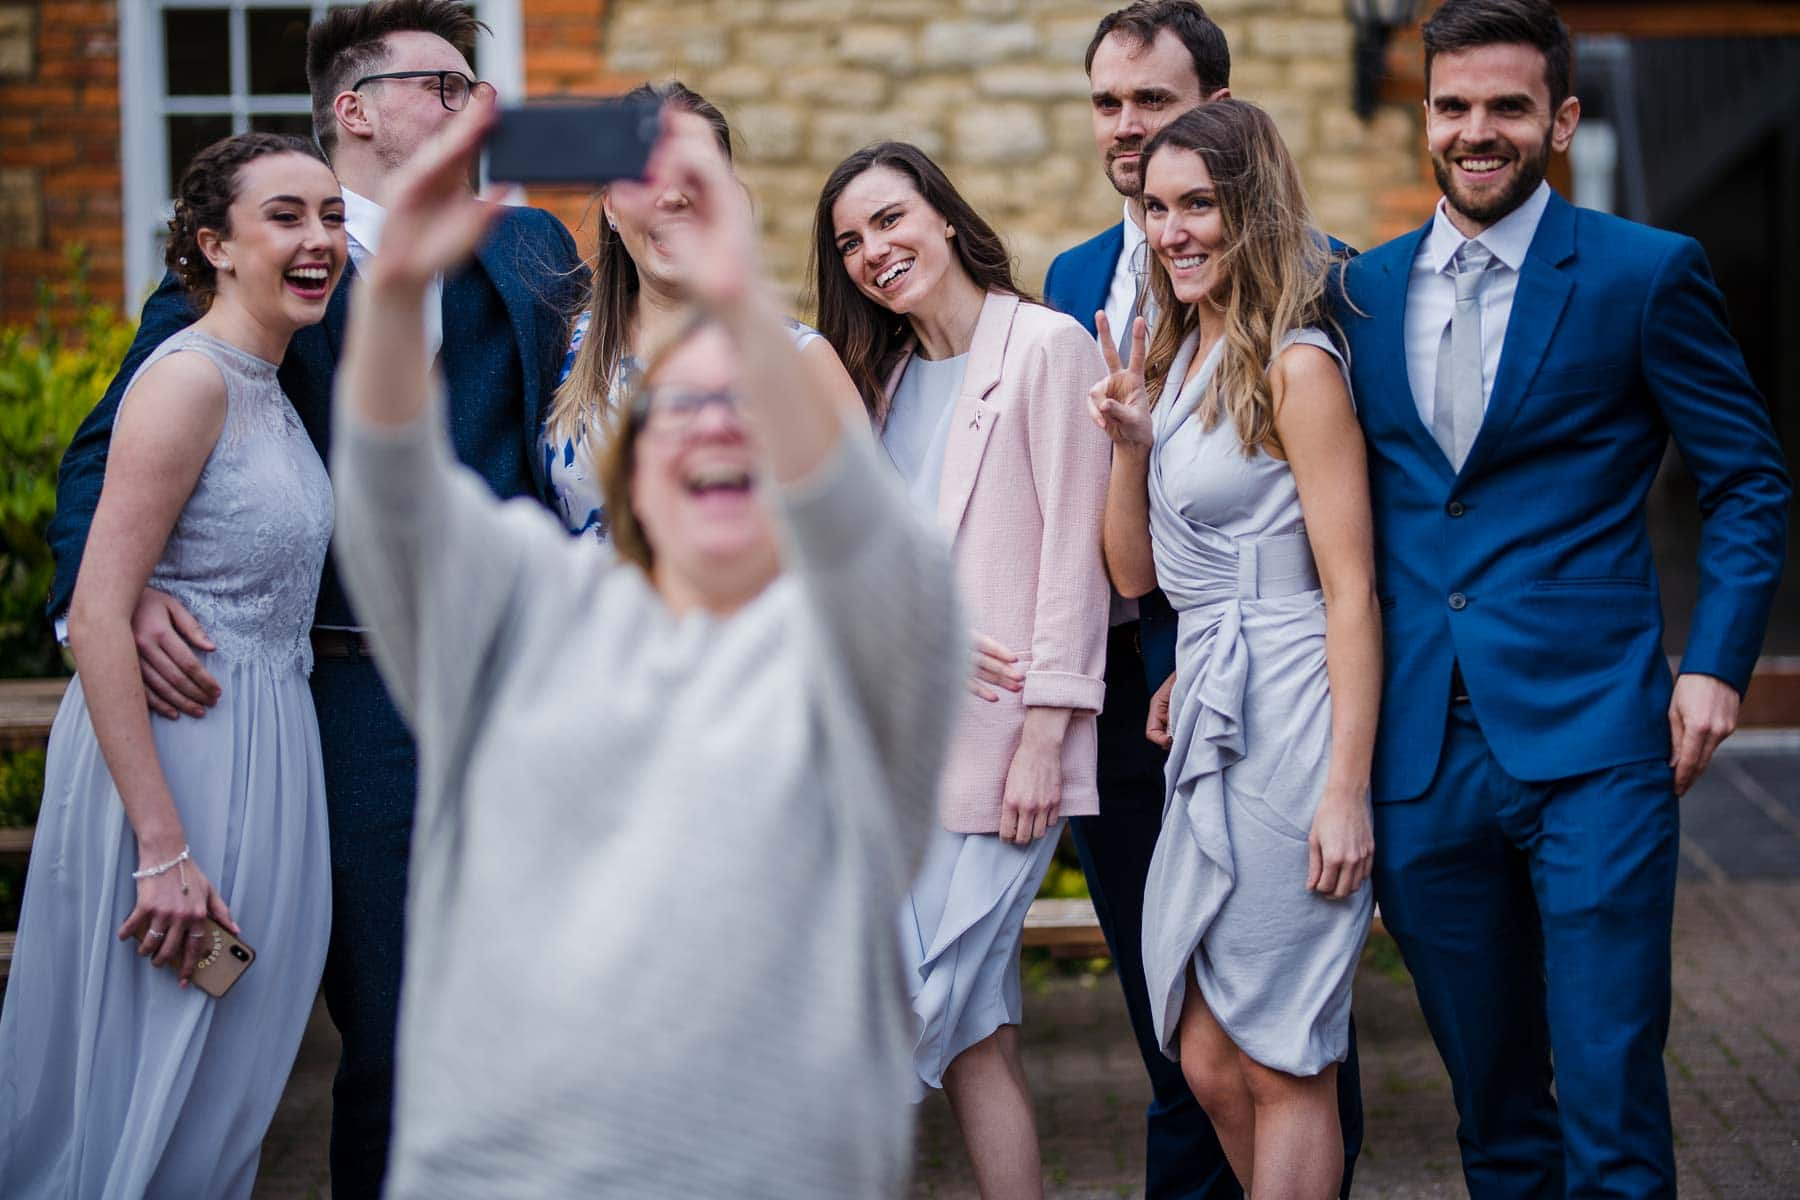 Random stranger taking a selfie with wedding guests